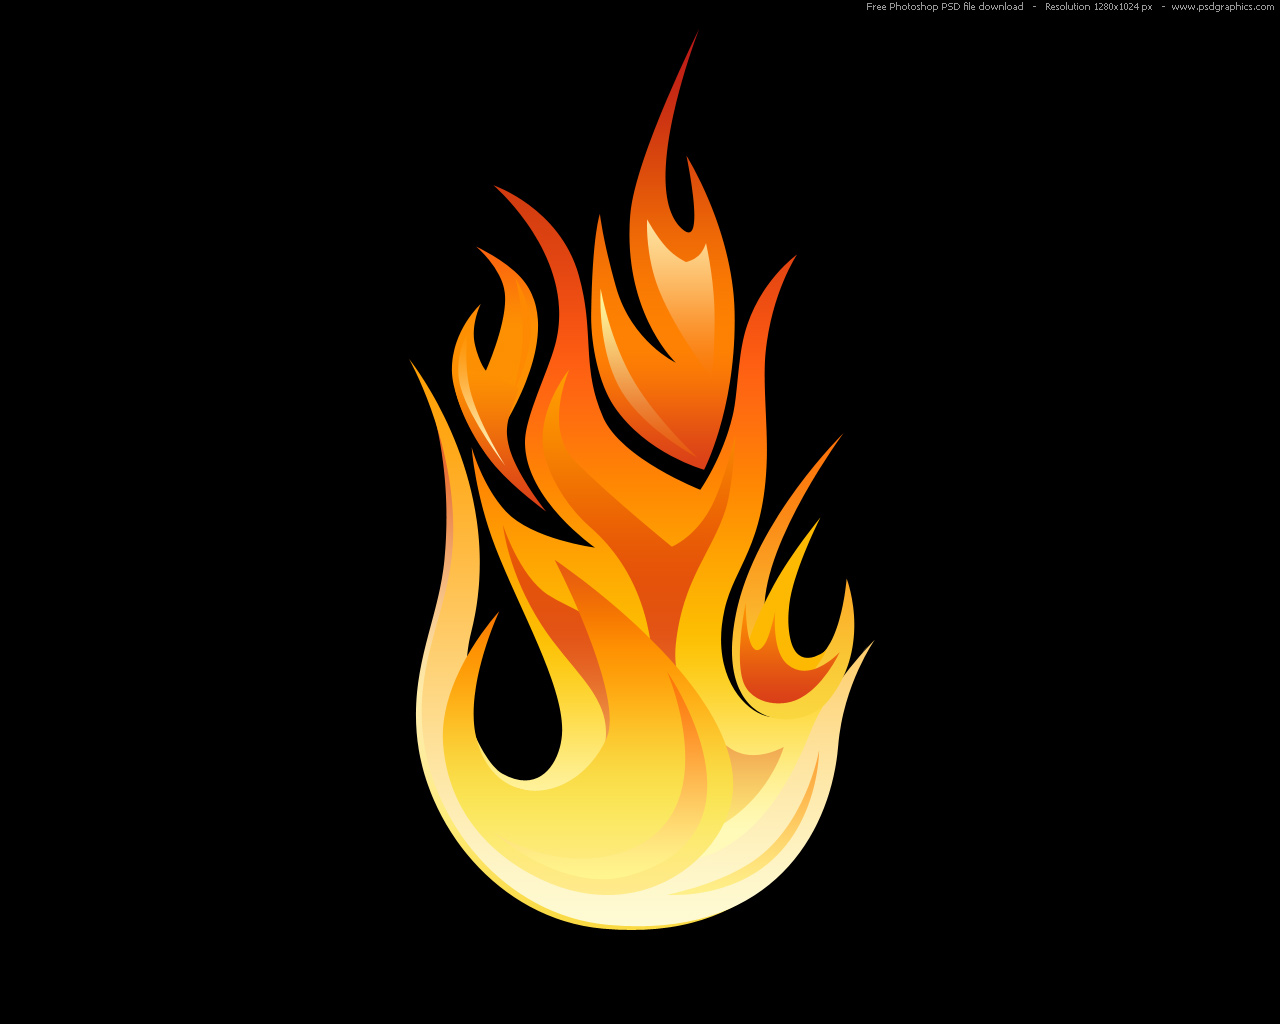 TODO VECTOR: PSD flame icon